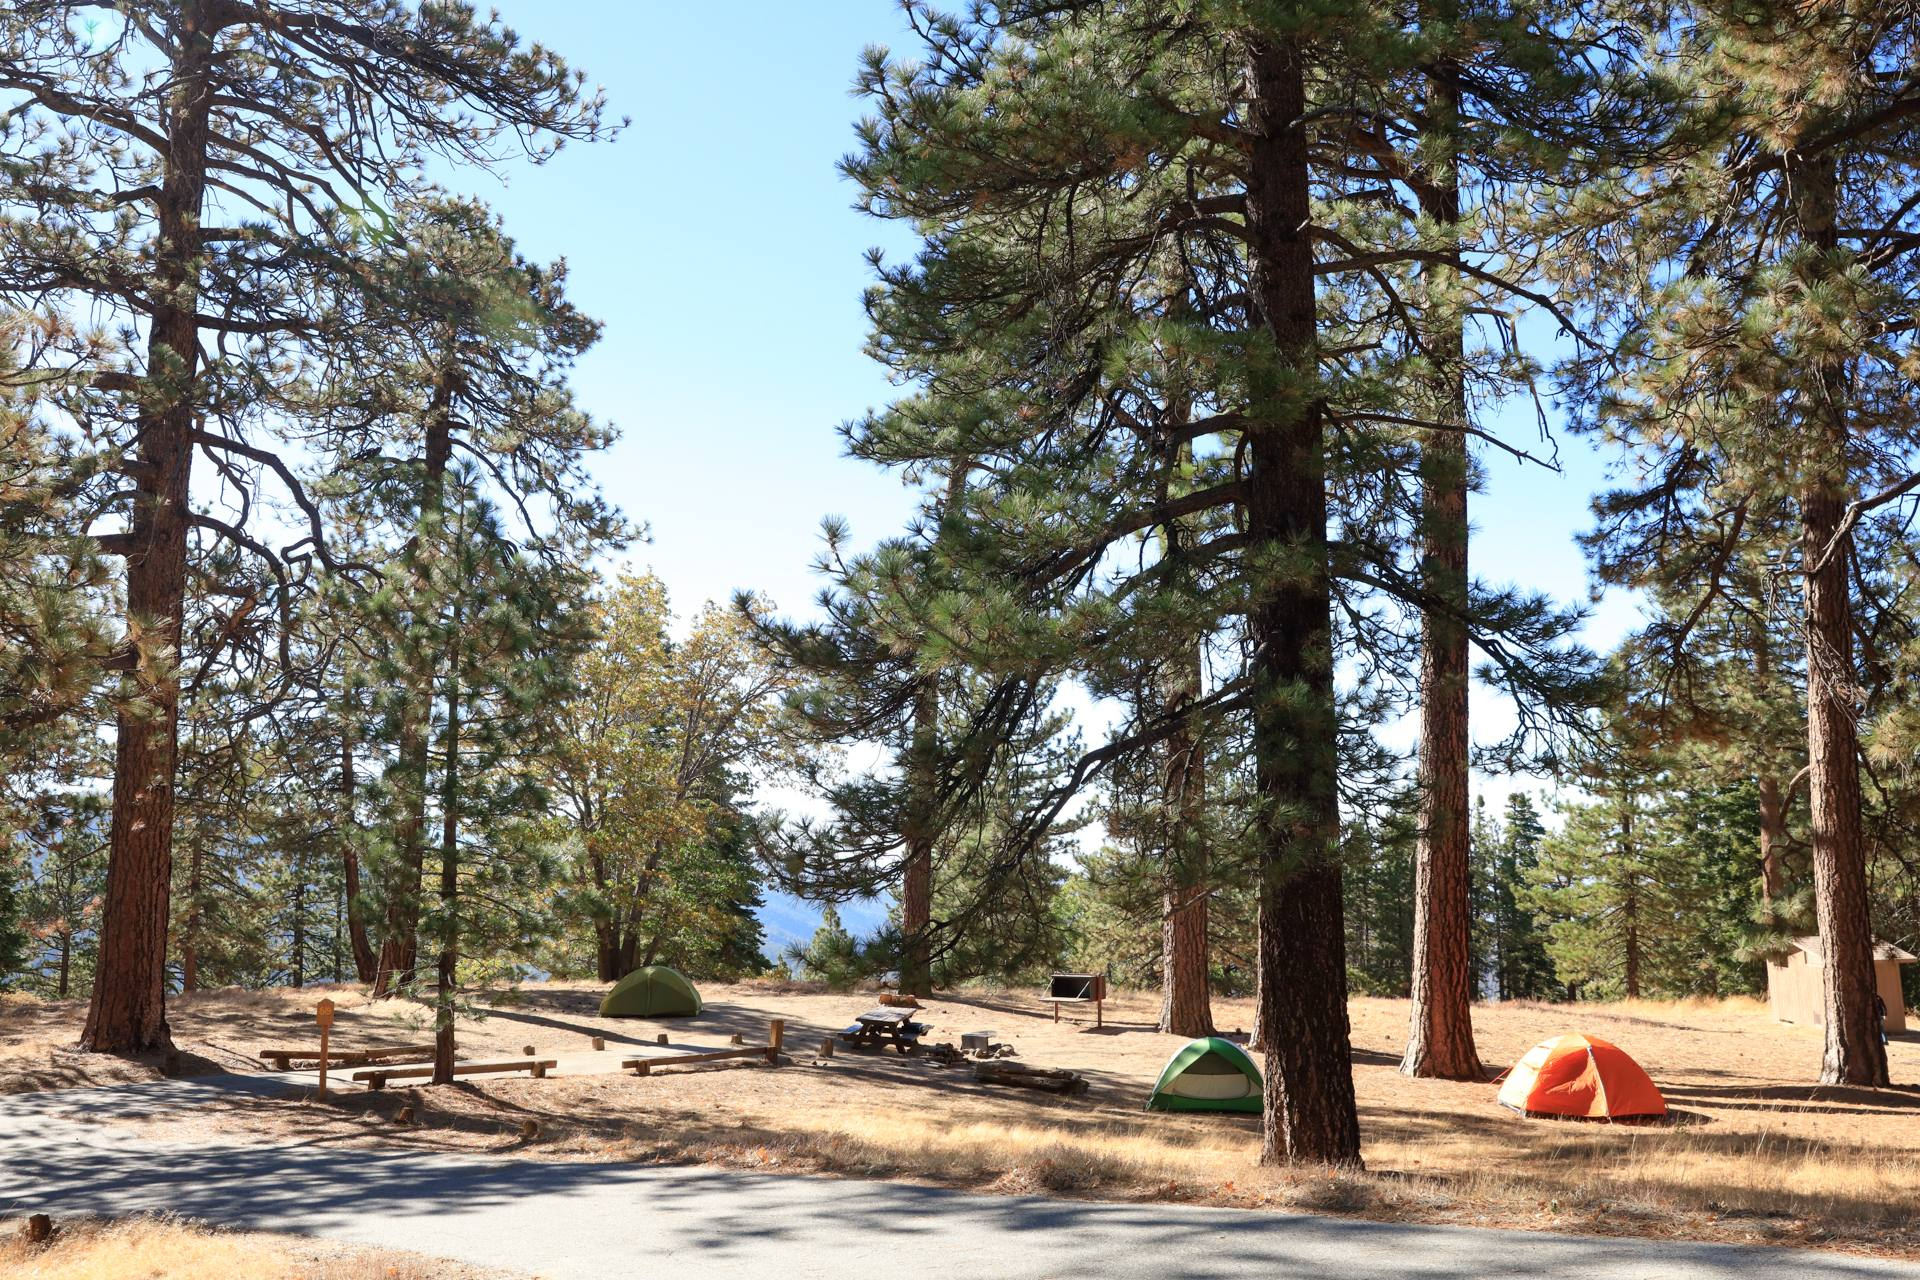 Table Mountain Campground in the Angeles National Forest